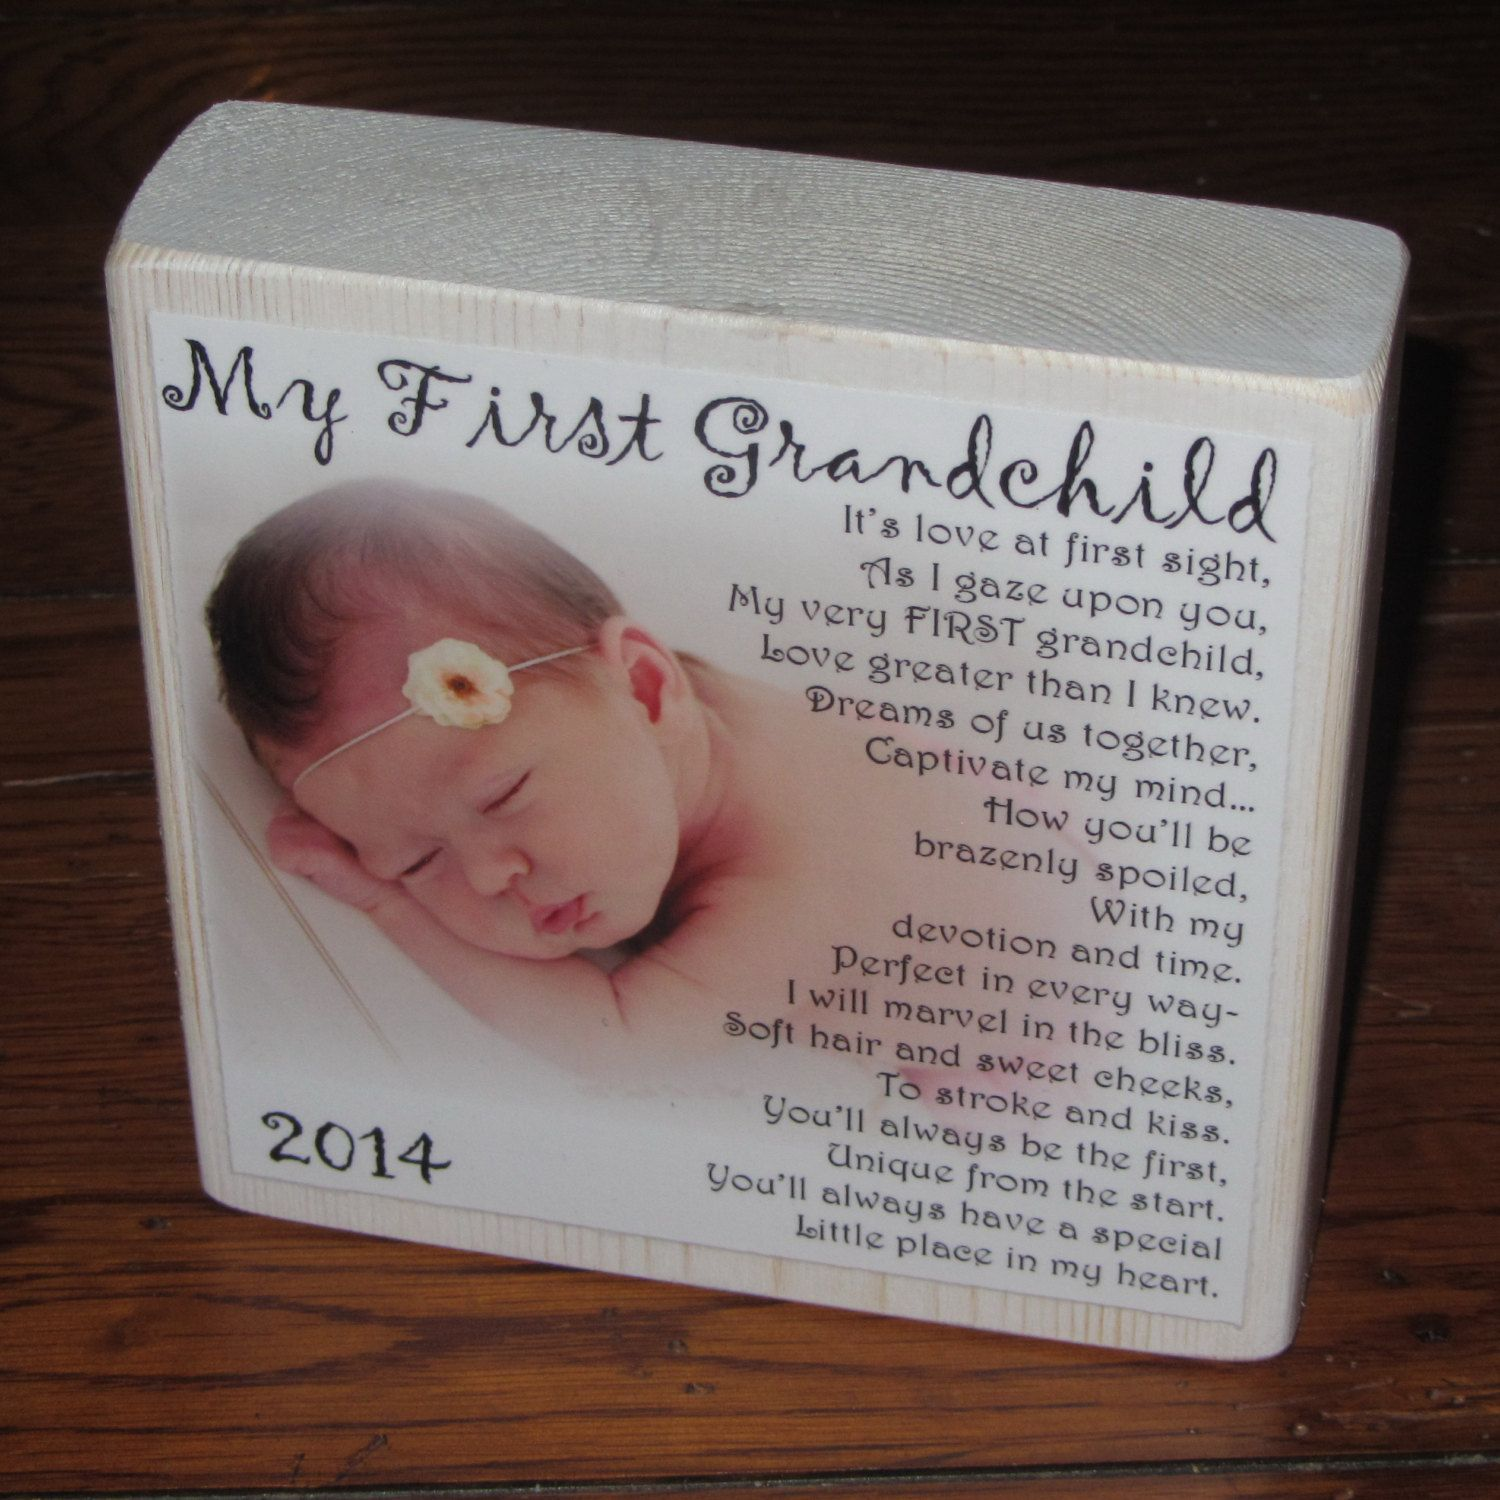 My first grandchild photo